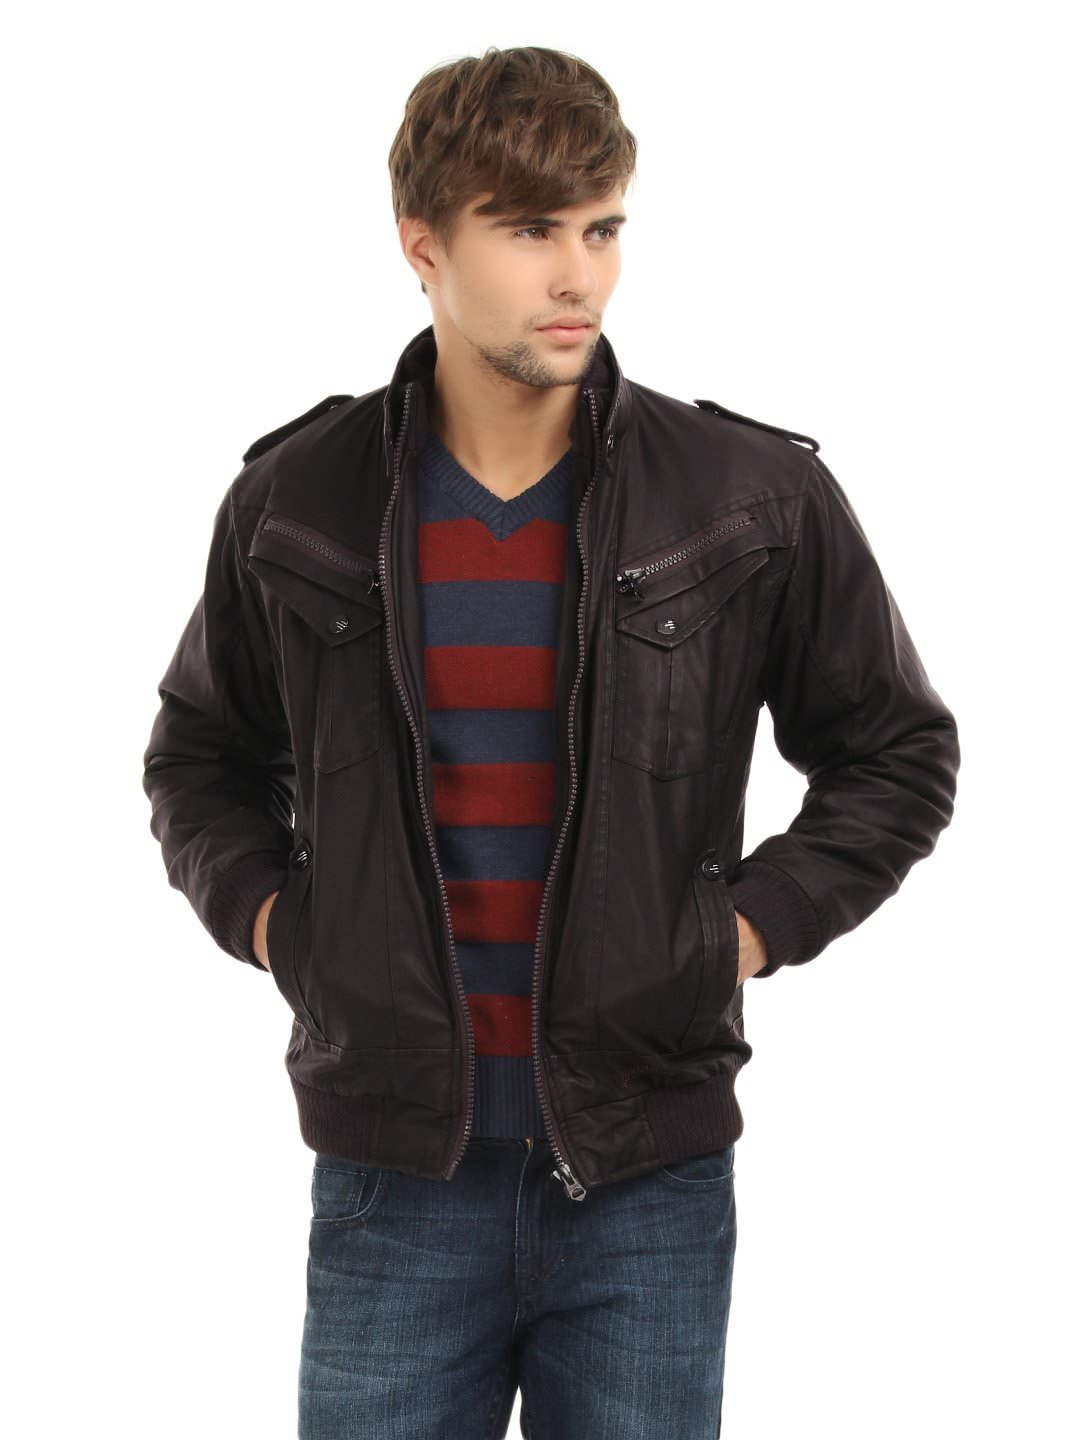 Free Shipping at neidagrosk0dwju.ga with $50 purchase. Shop for rugged men's outerwear that will keep you warm, dry and comfortable, in all types of weather, in every season. Made for the shared joy of the outdoors.